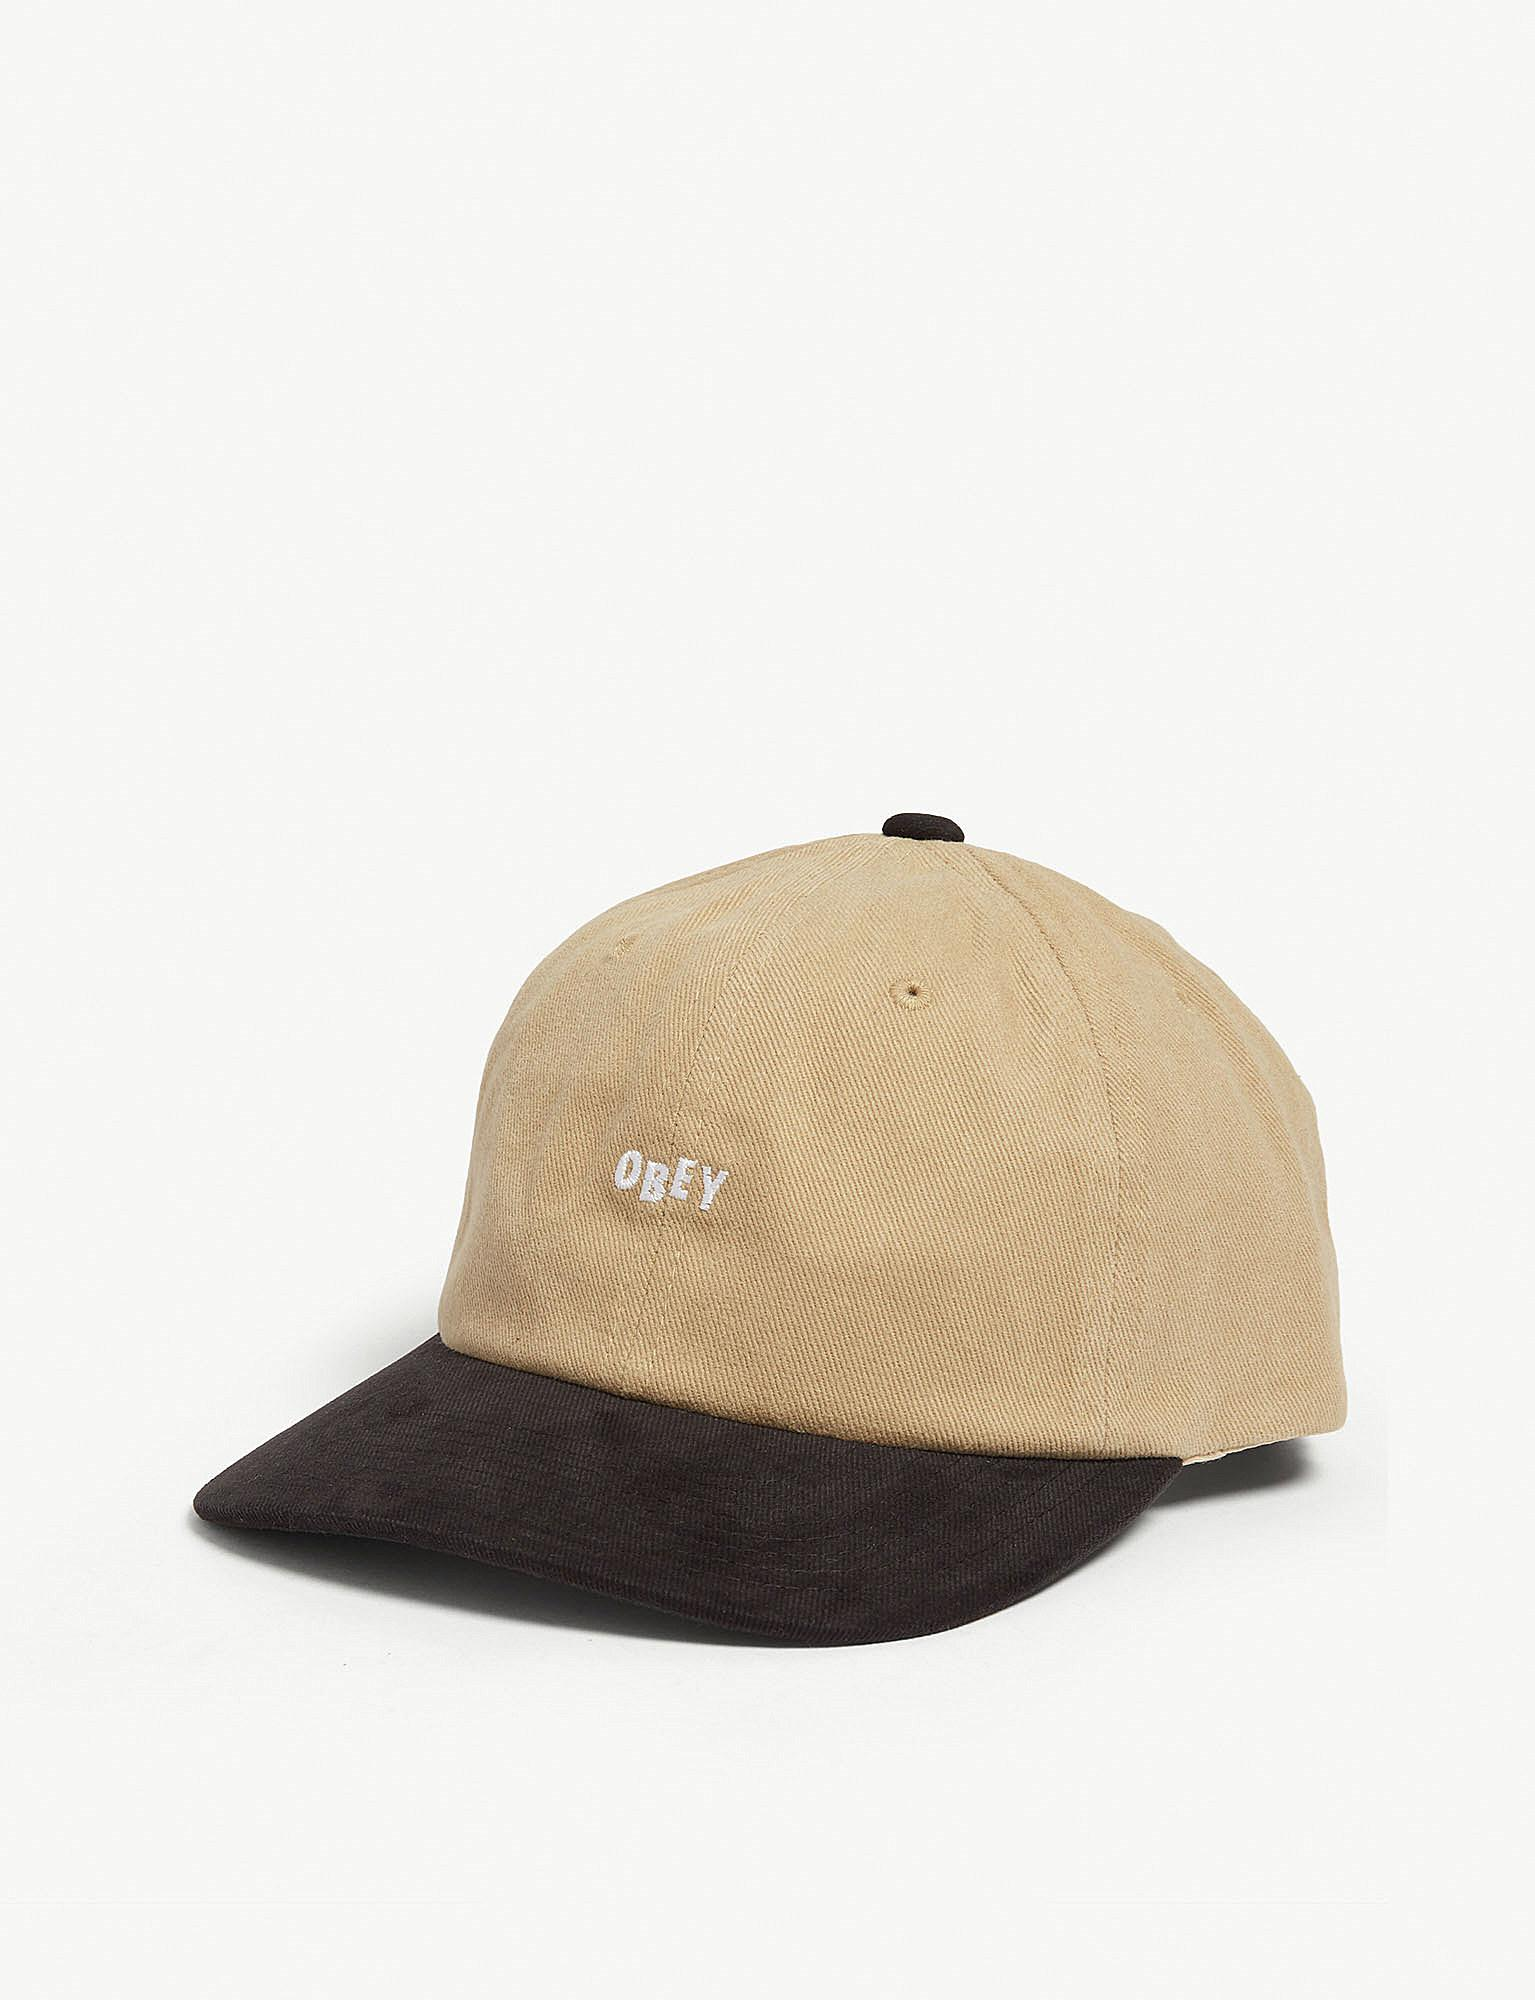 7cf05c8ad60 Lyst - Obey Jumble Cotton Snapback Cap in Natural for Men